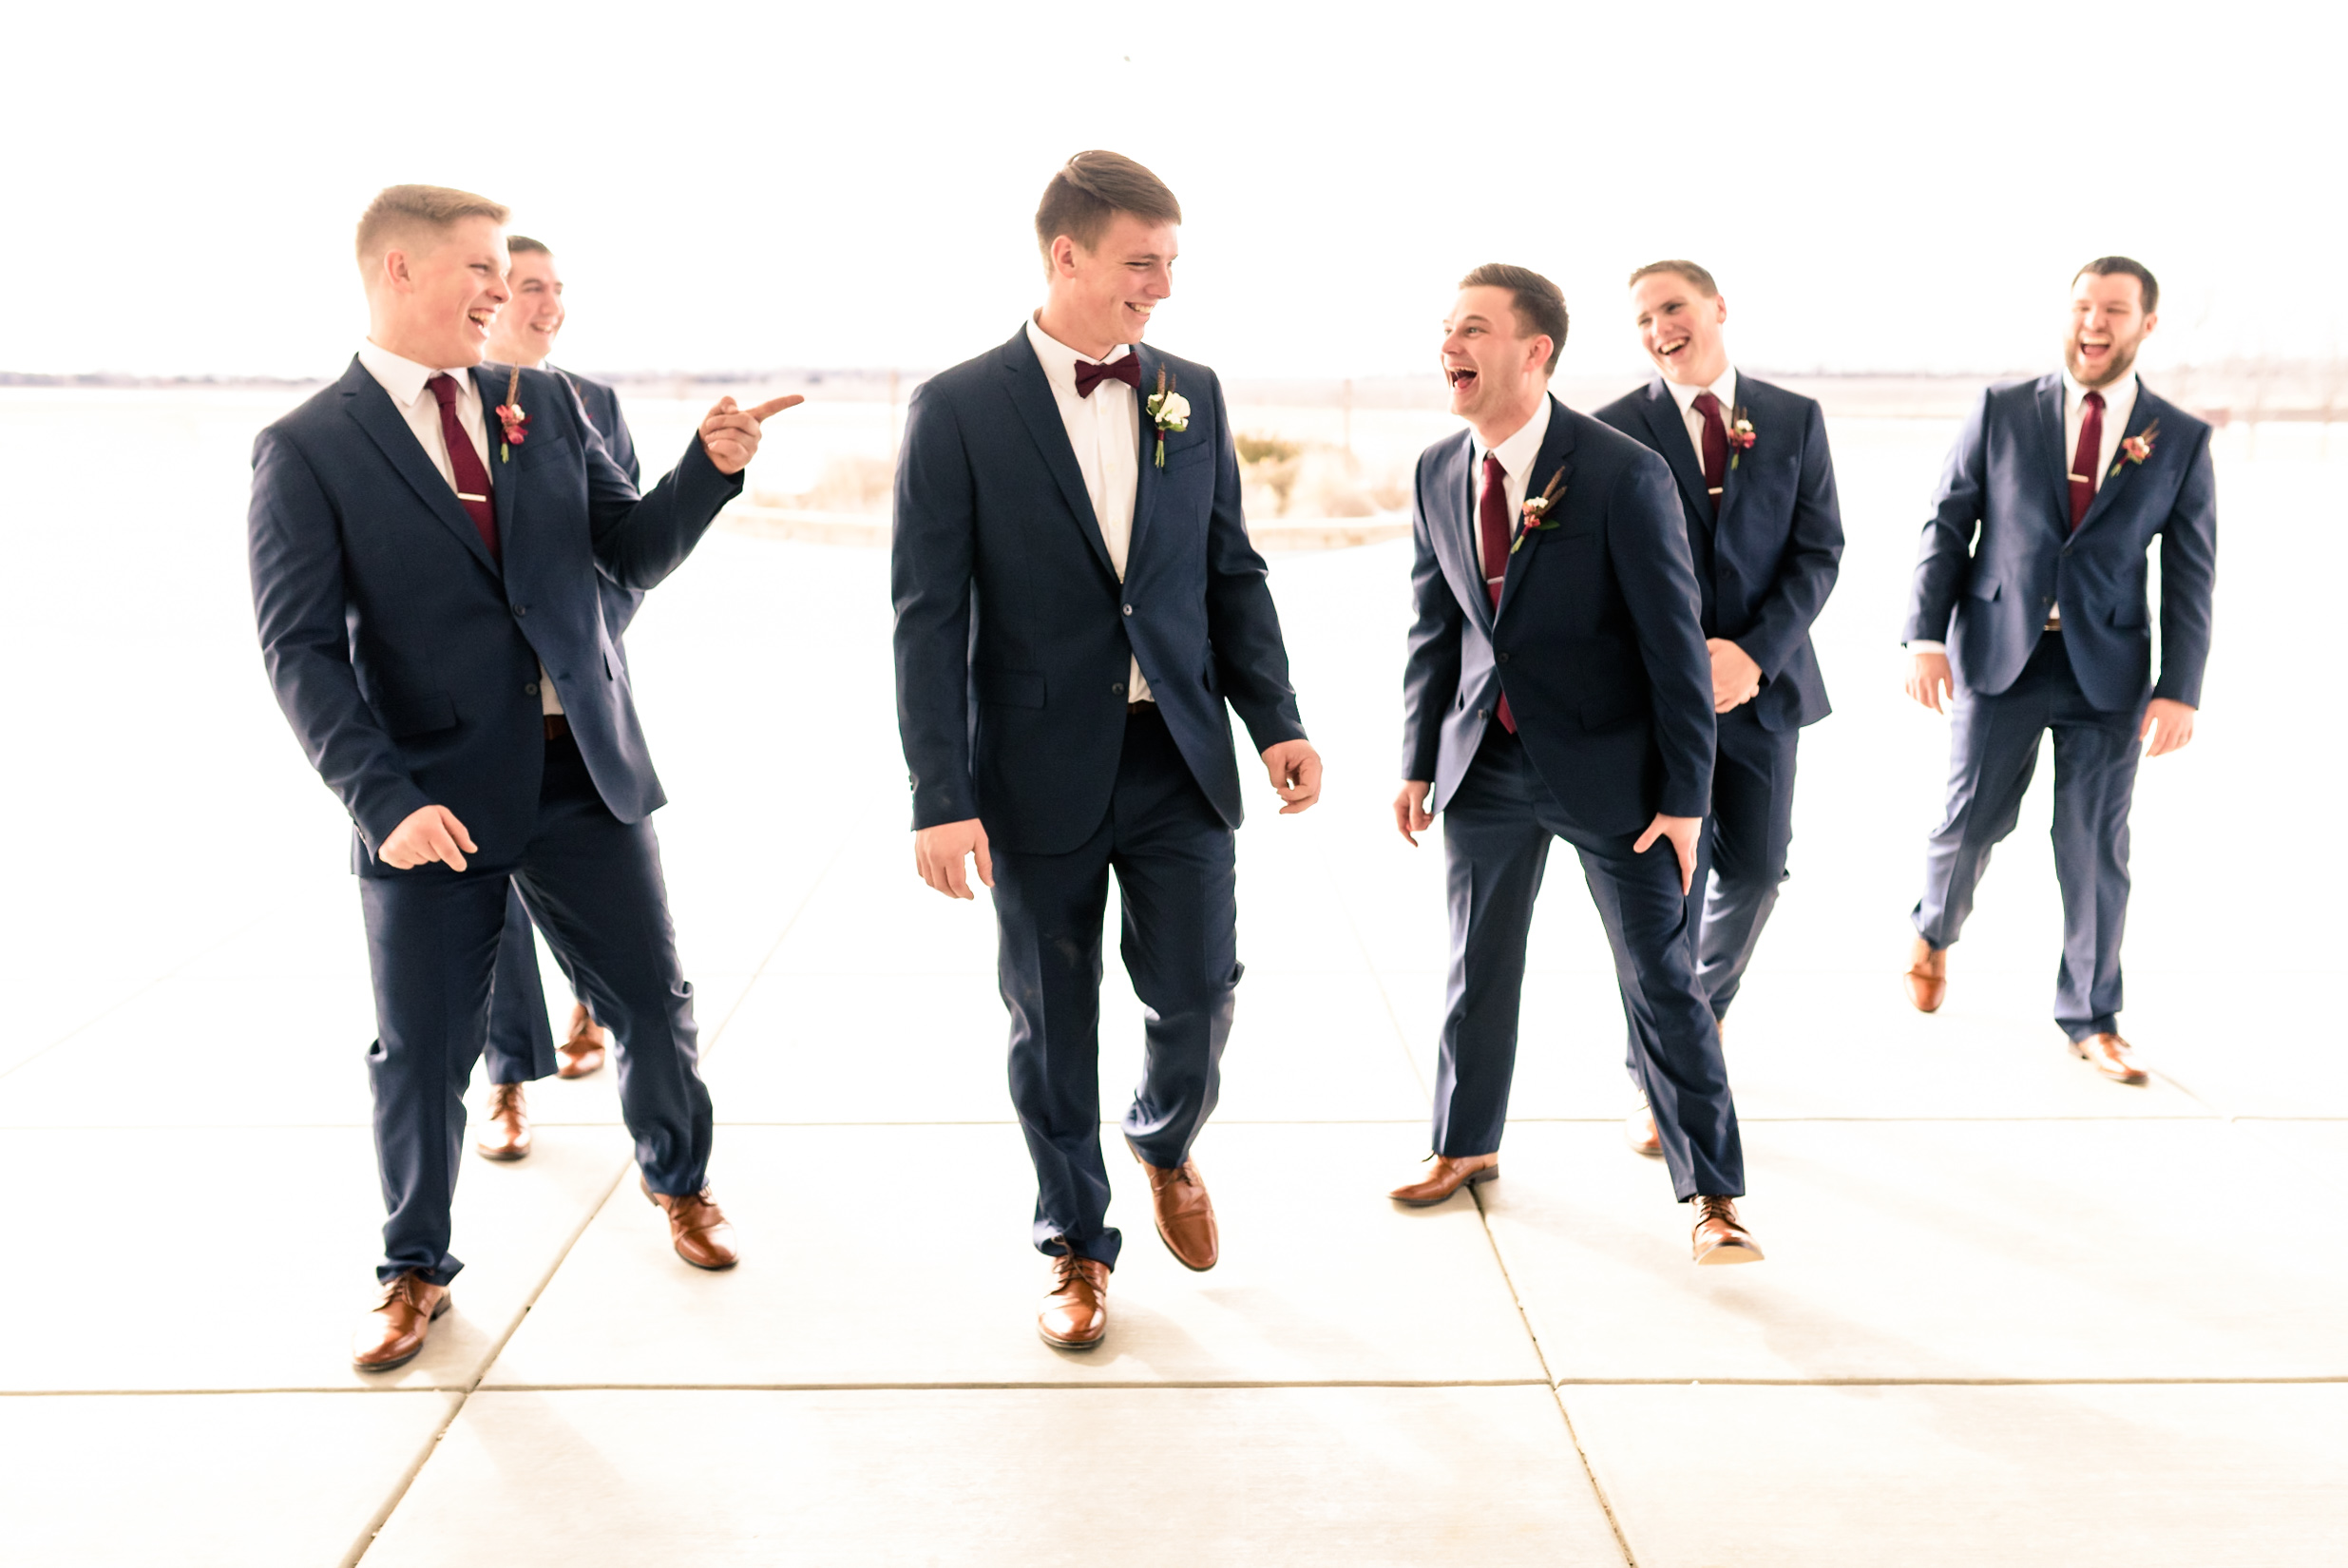 groomsmen, wedding videographer, fun